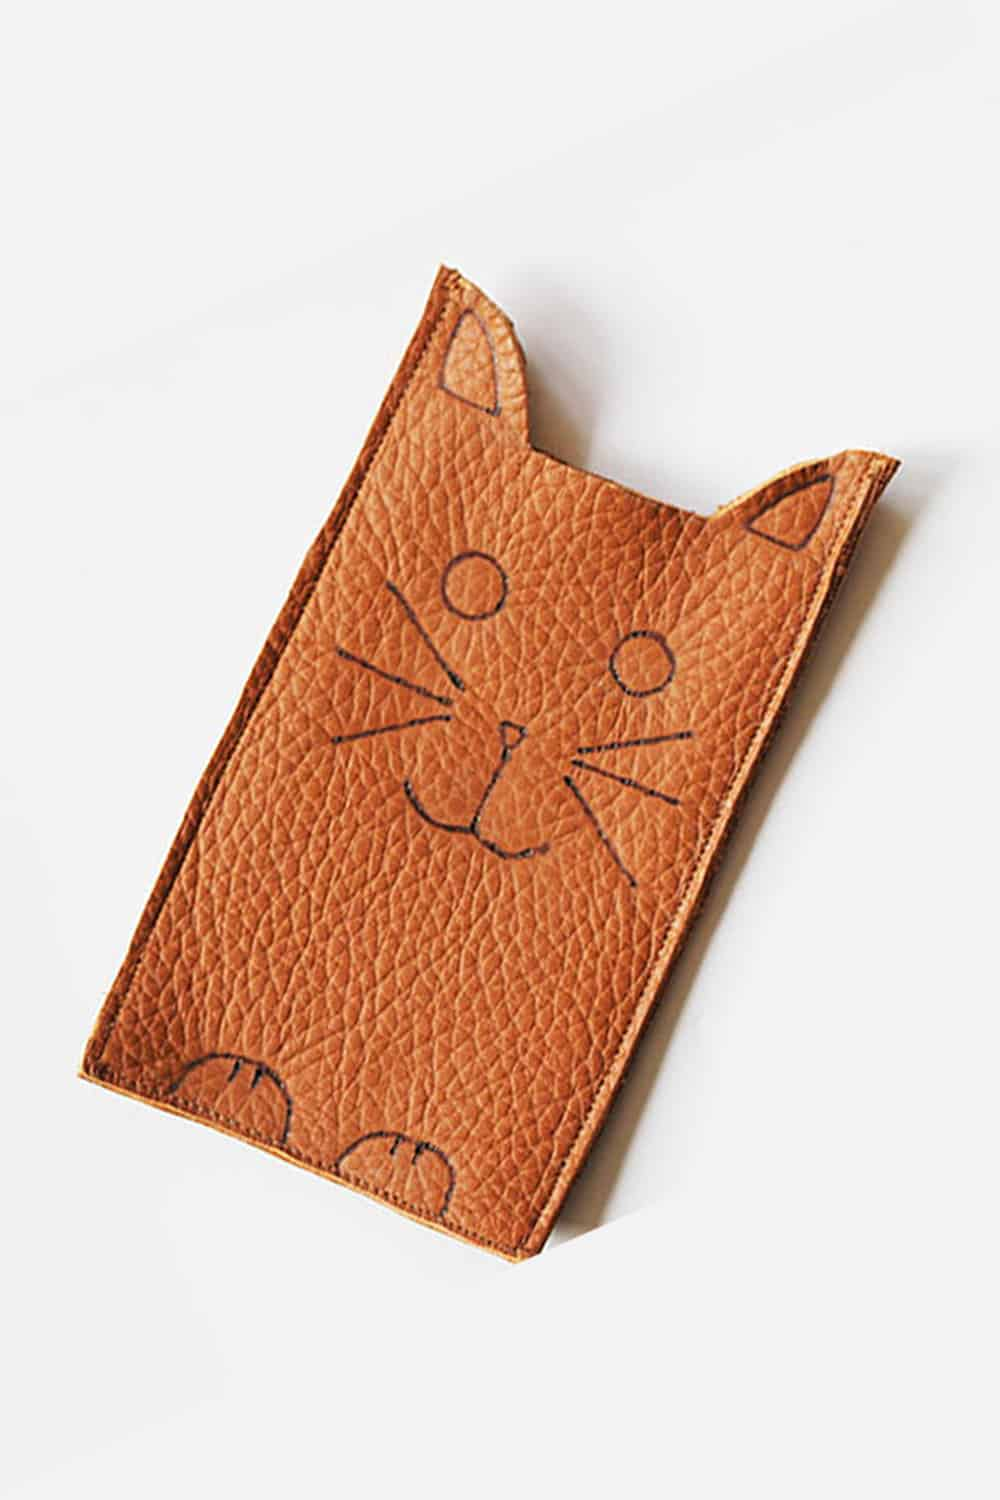 Stitched leather cat phone sleeve